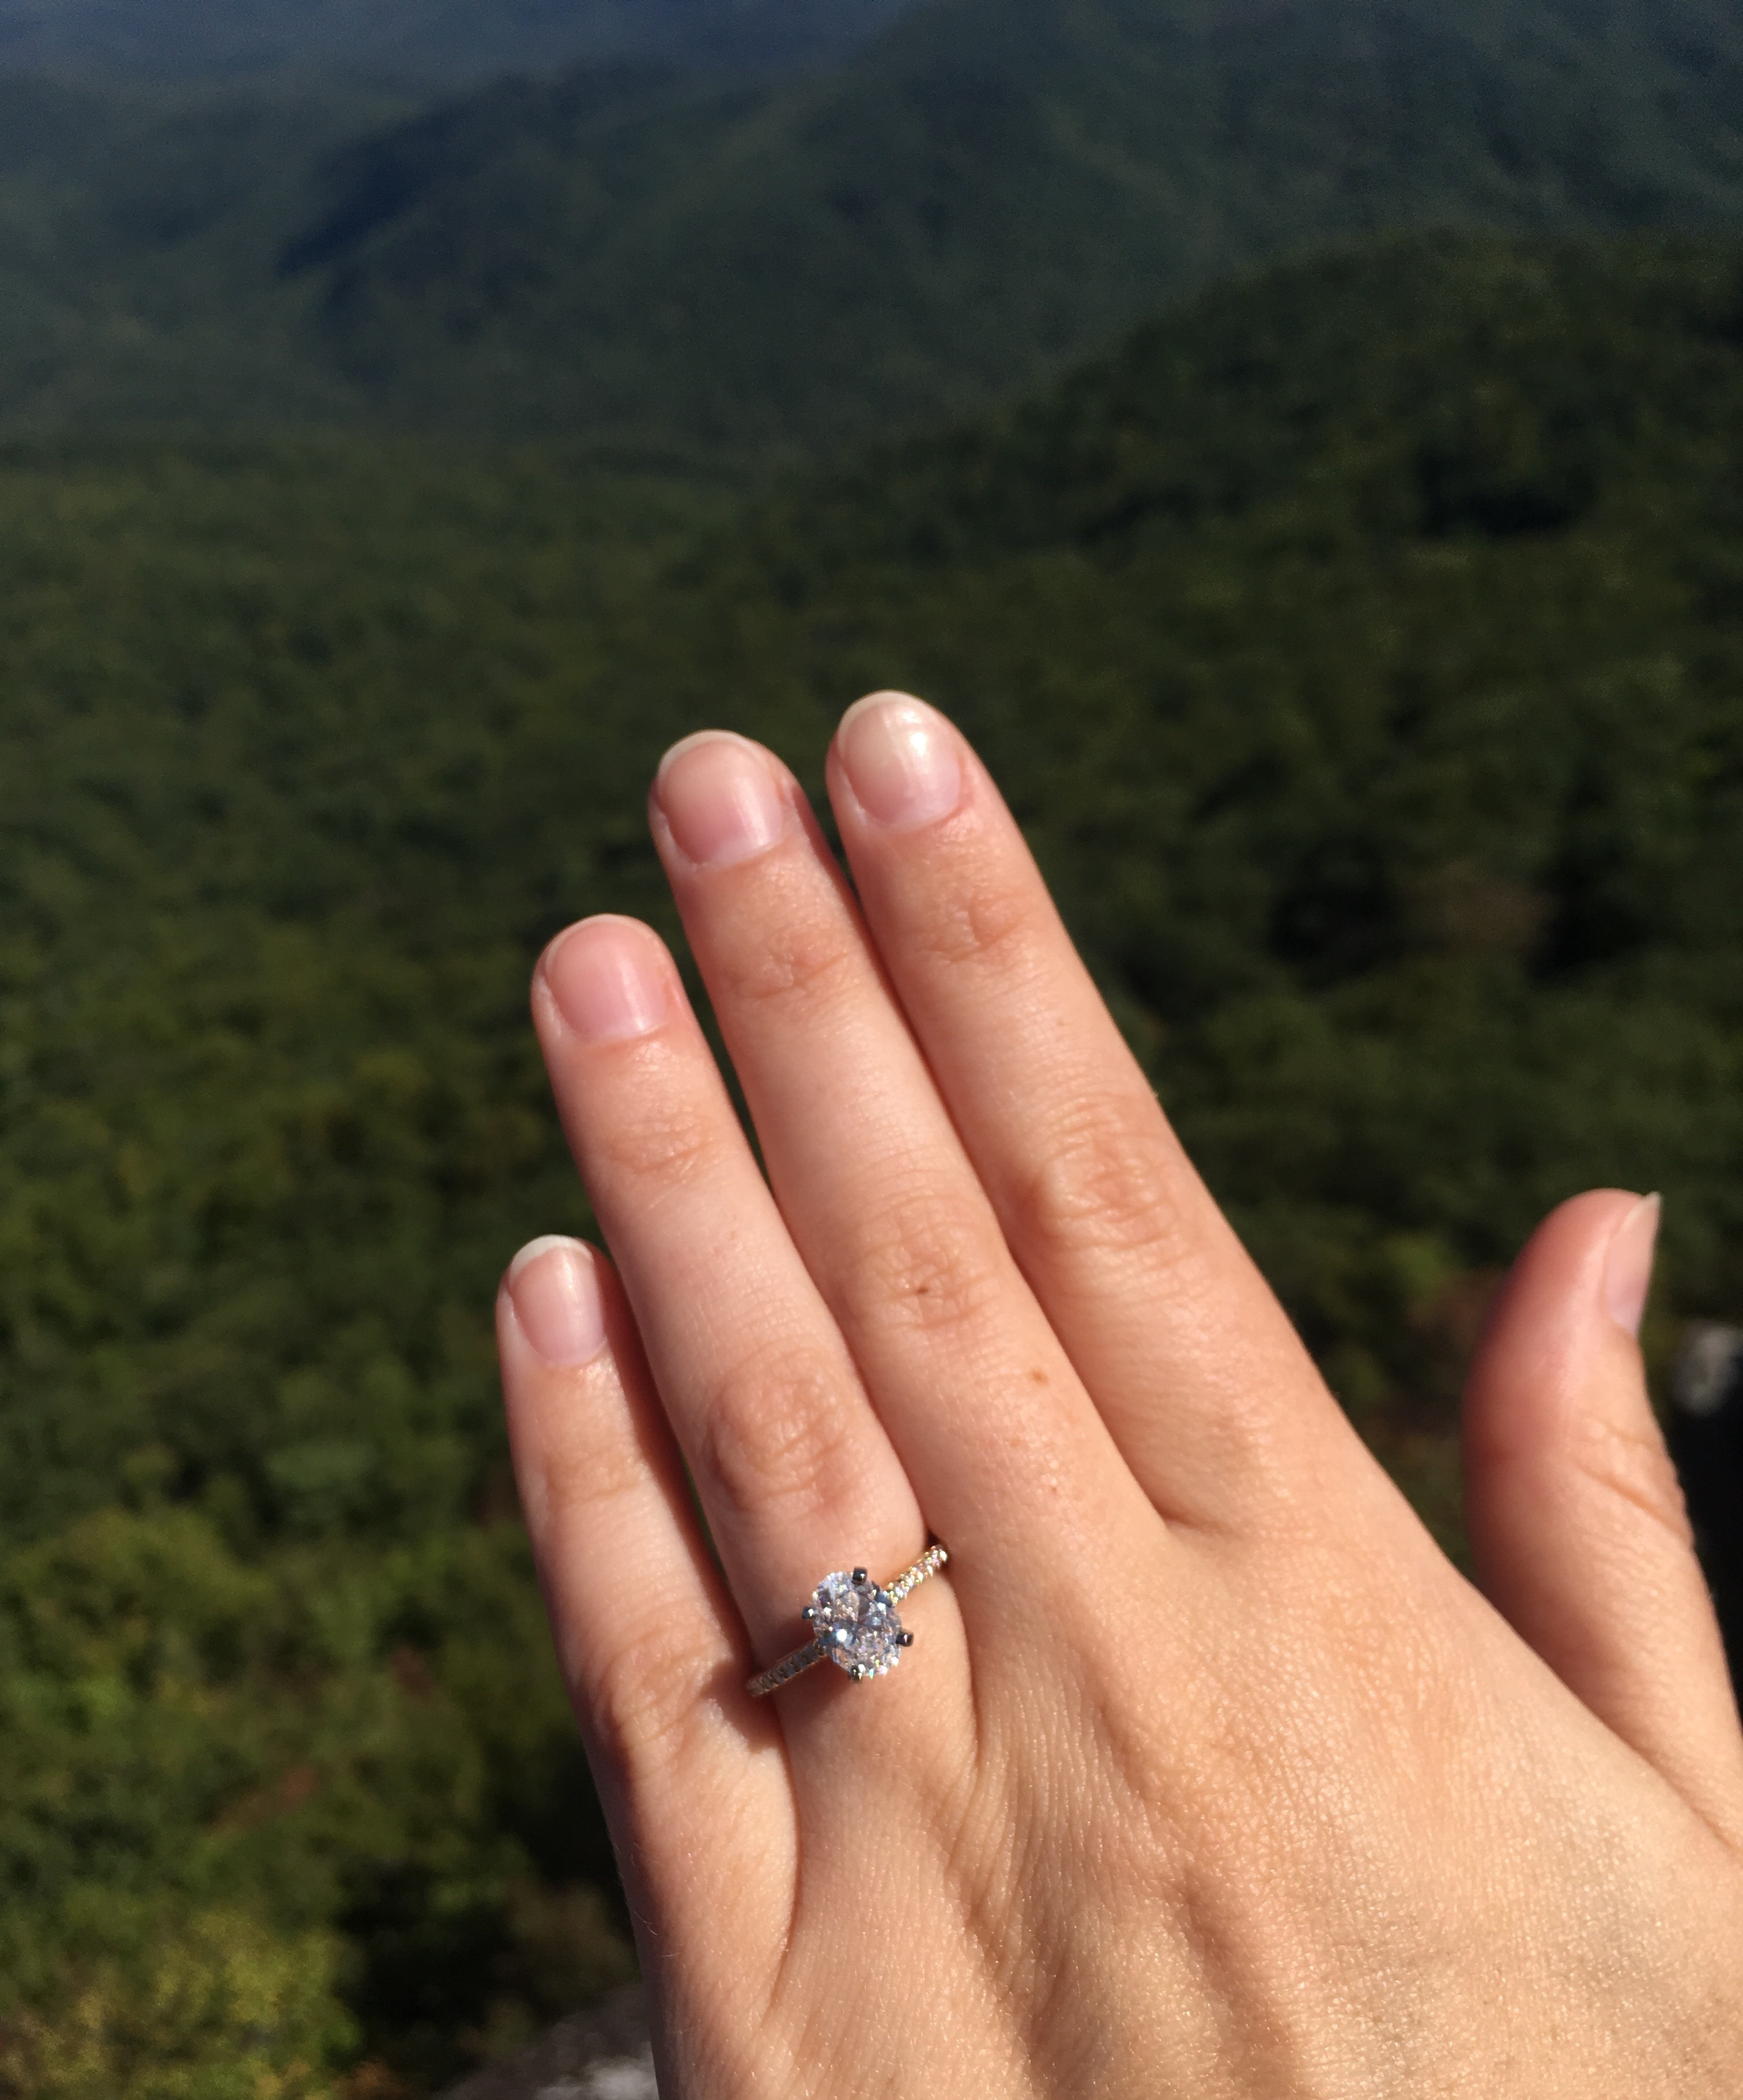 Singer Scotty McCreery proposes to longtime girlfriend